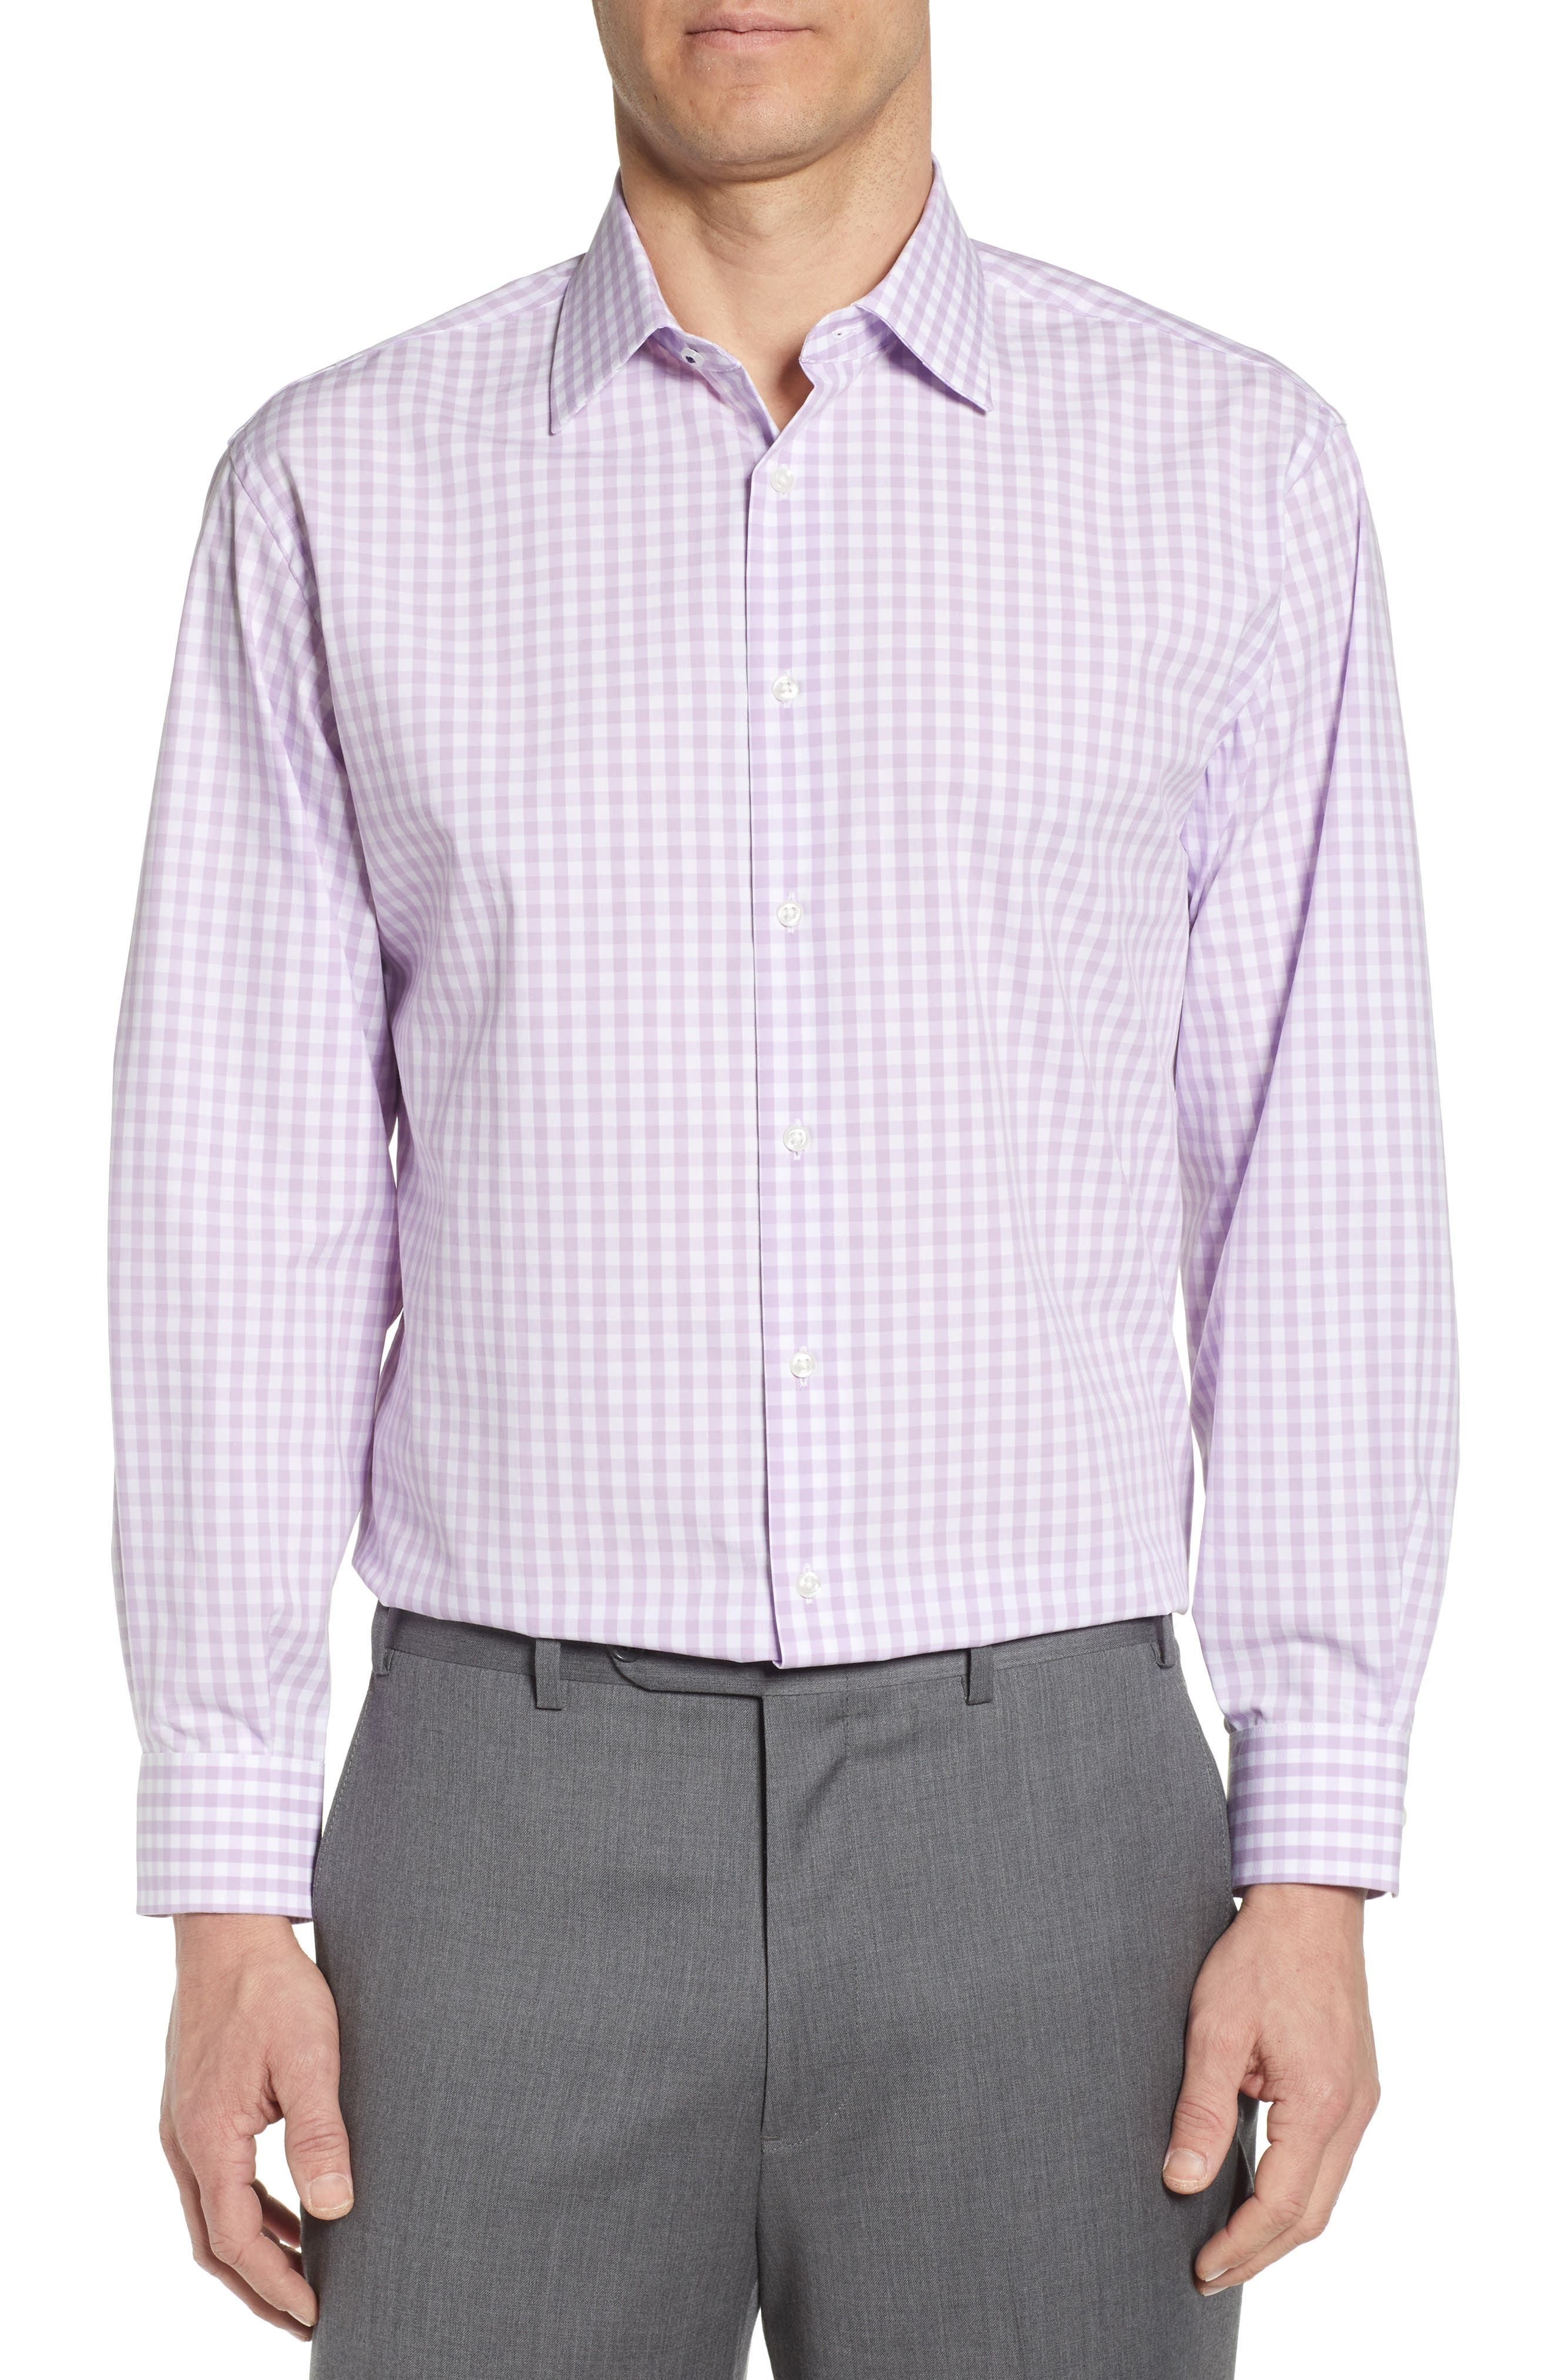 A wardrobe-staple dress shirt is tailored from a breathable stretch-cotton tech blend that keeps you feeling dry and looking smart all day. Sharp checks complete the look. Style Name: Nordstrom Men\\\'s Shop Tech-Smart Classic Fit Stretch Check Dress Shirt. Style Number: 5626283. Available in stores.